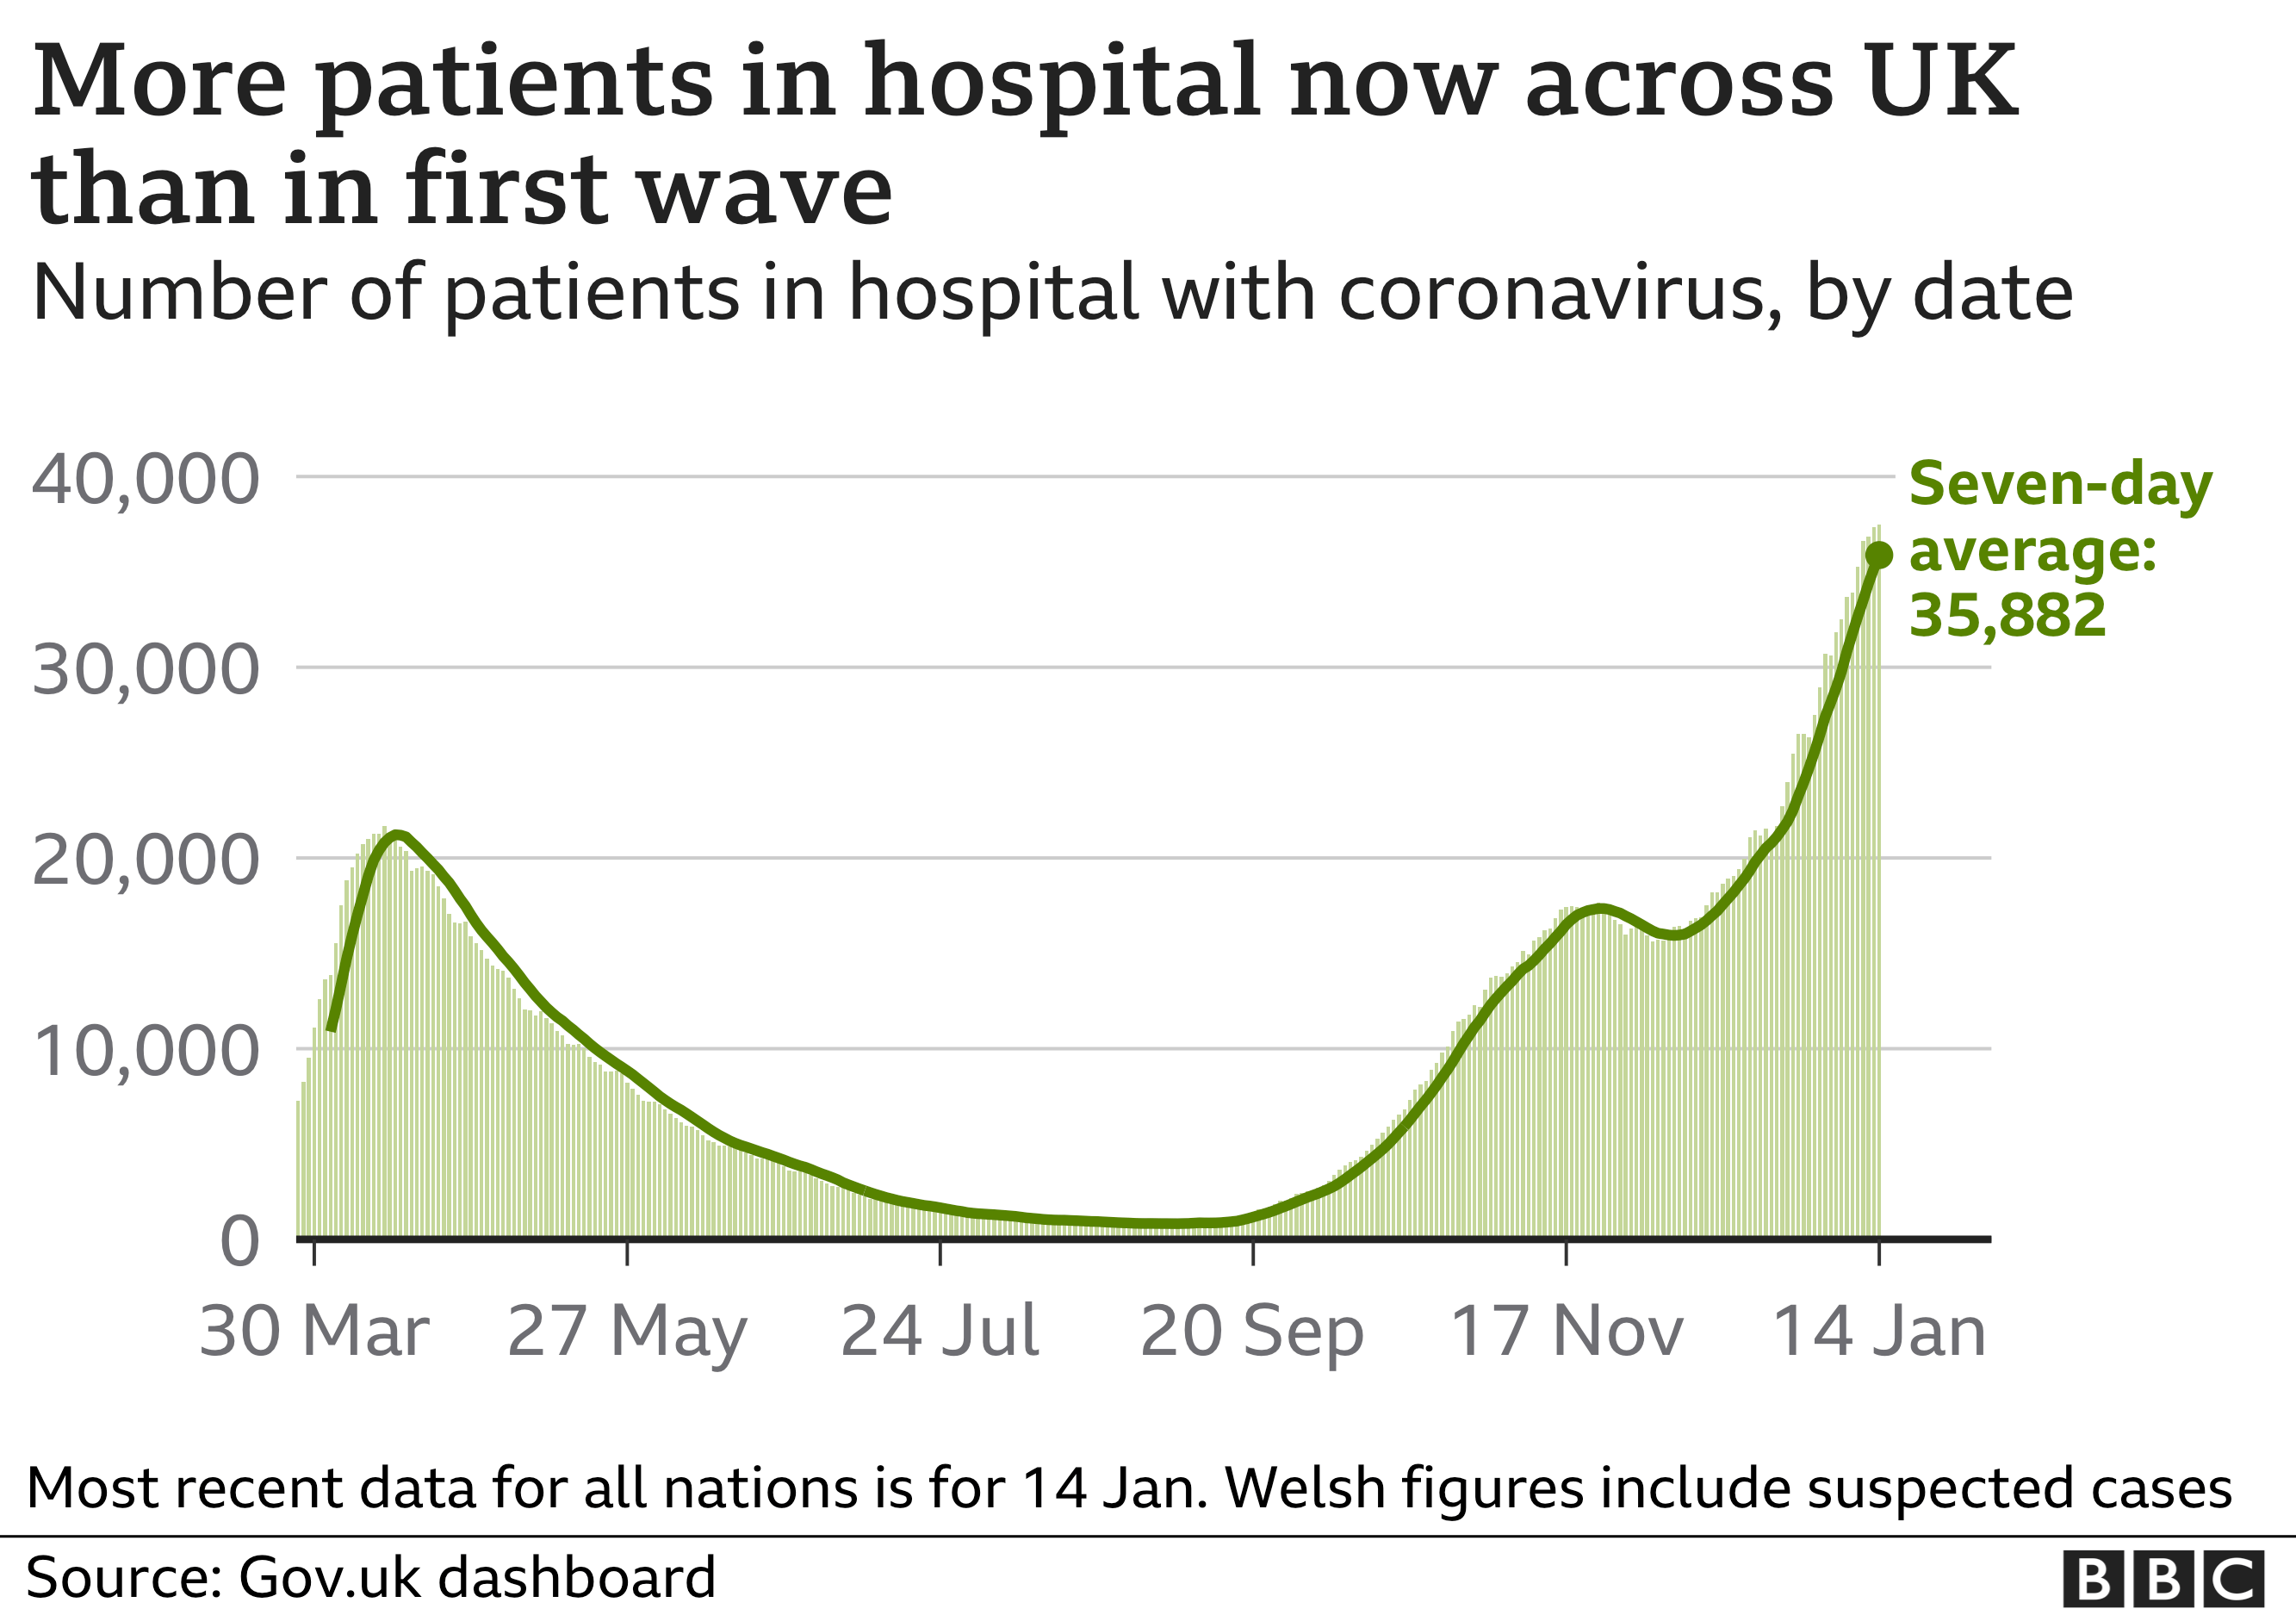 Graph showing the number o fpatients in hospital